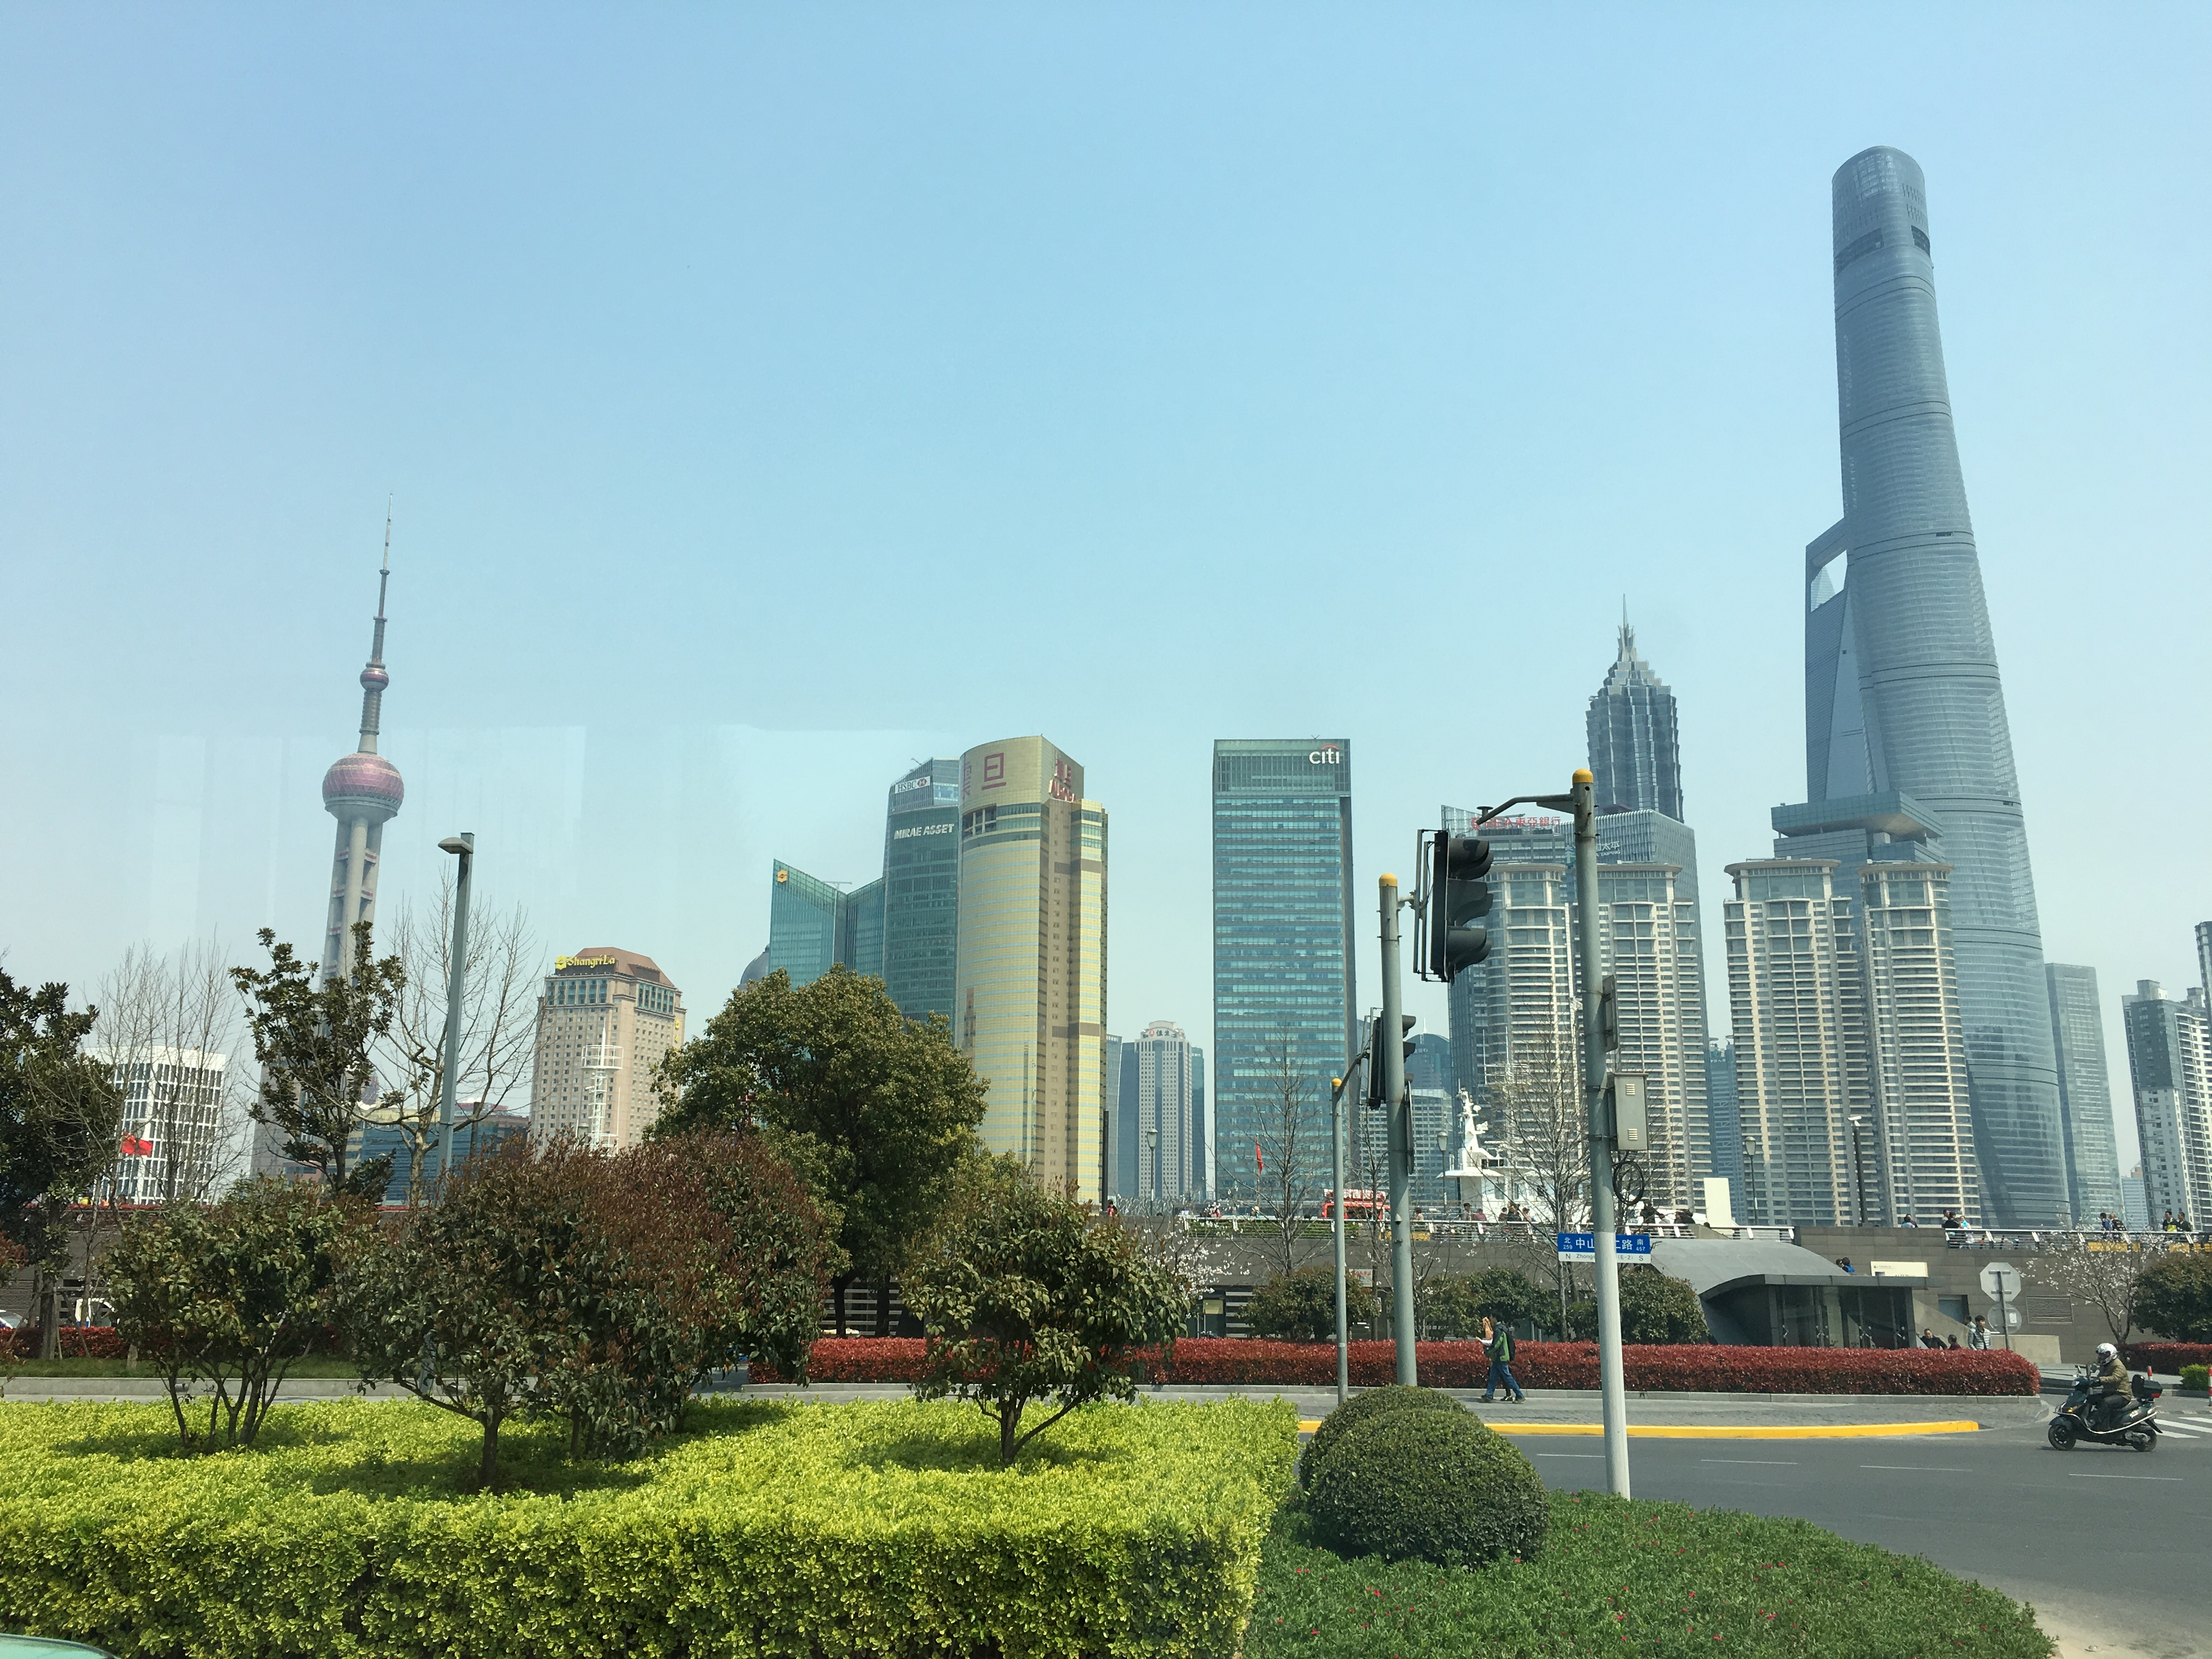 Day 10: Shanghai Sightseeing